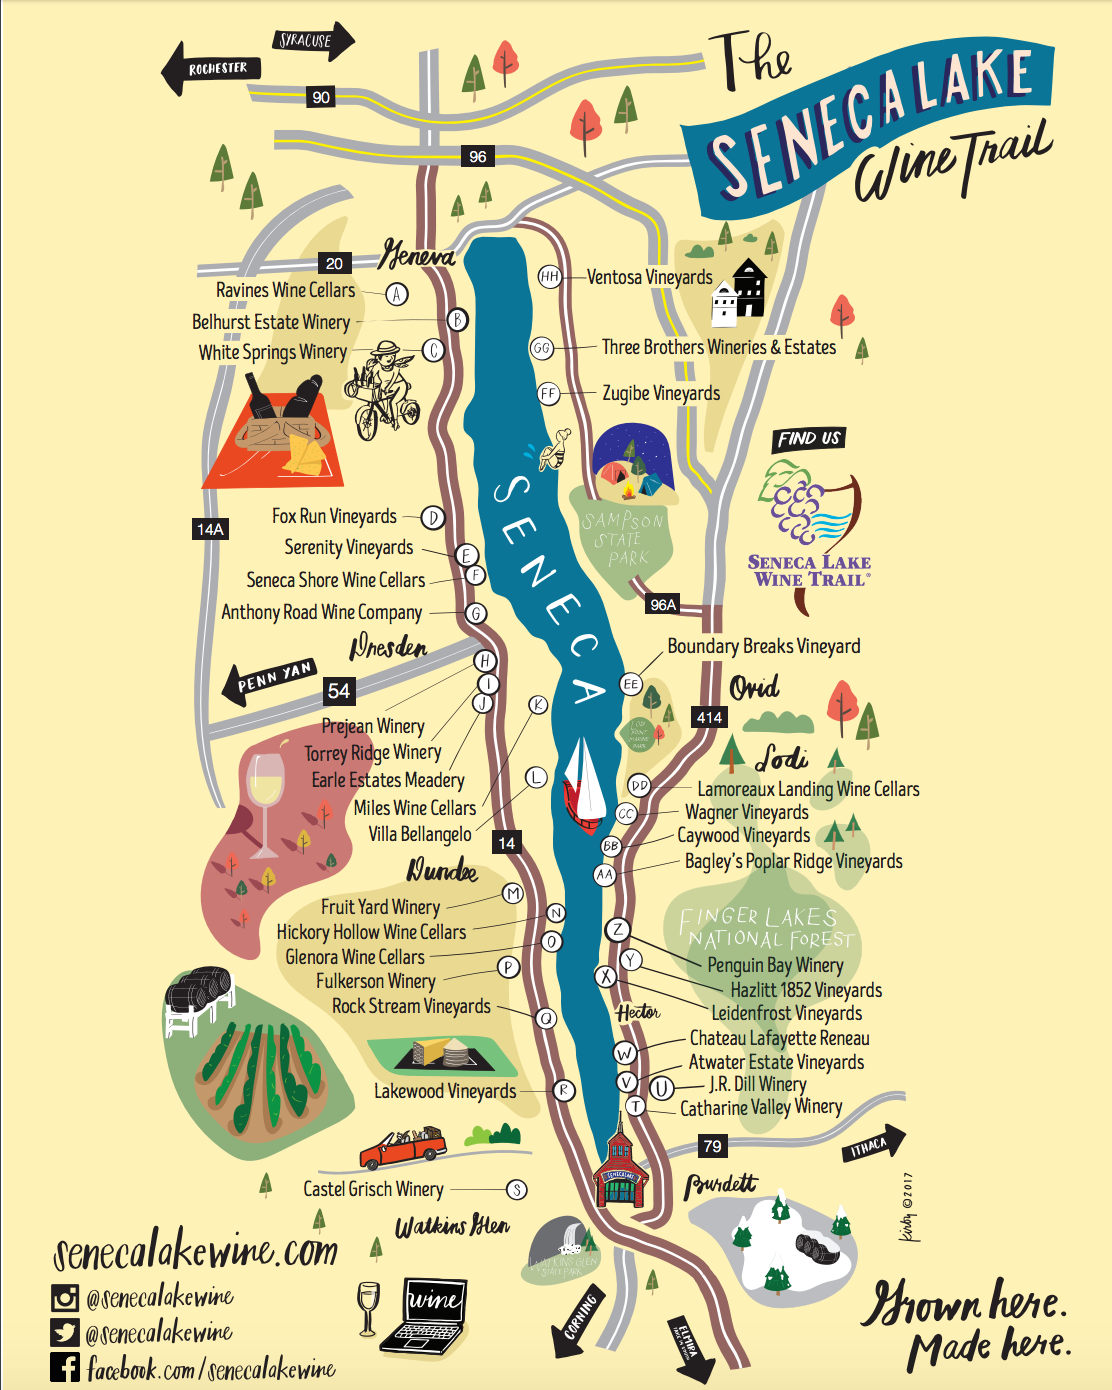 cayuga lake wineries map Wine Tours Rochester Limo Bus Wine Tours And Winery Tours cayuga lake wineries map